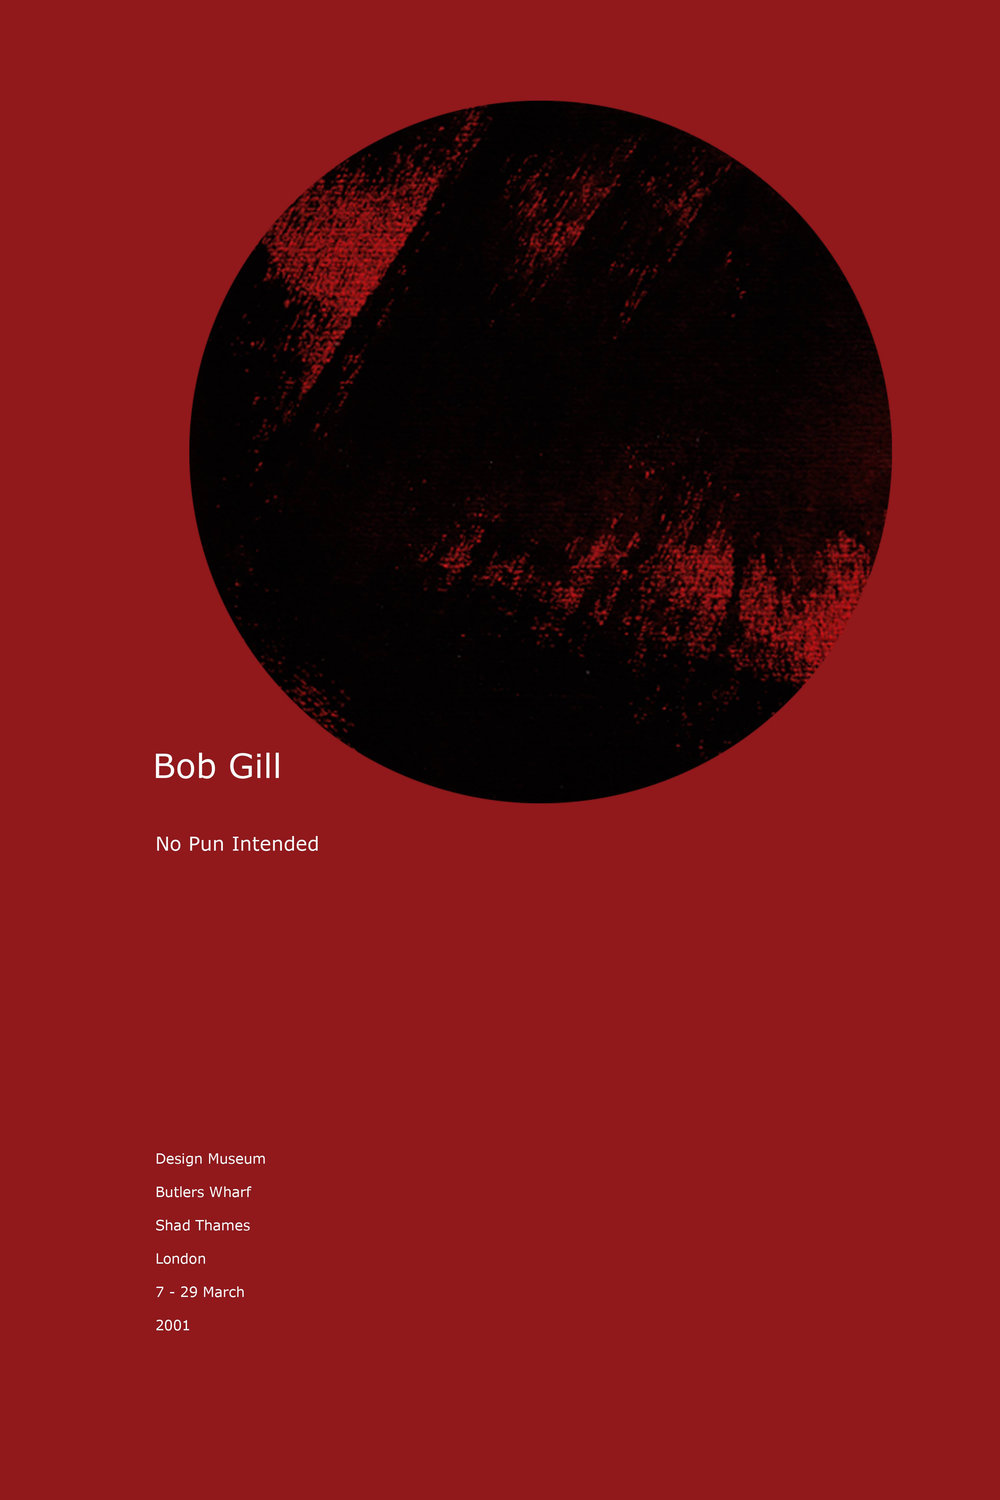 Poster for Bob Gill's  Exhibition at Design   Museum in London